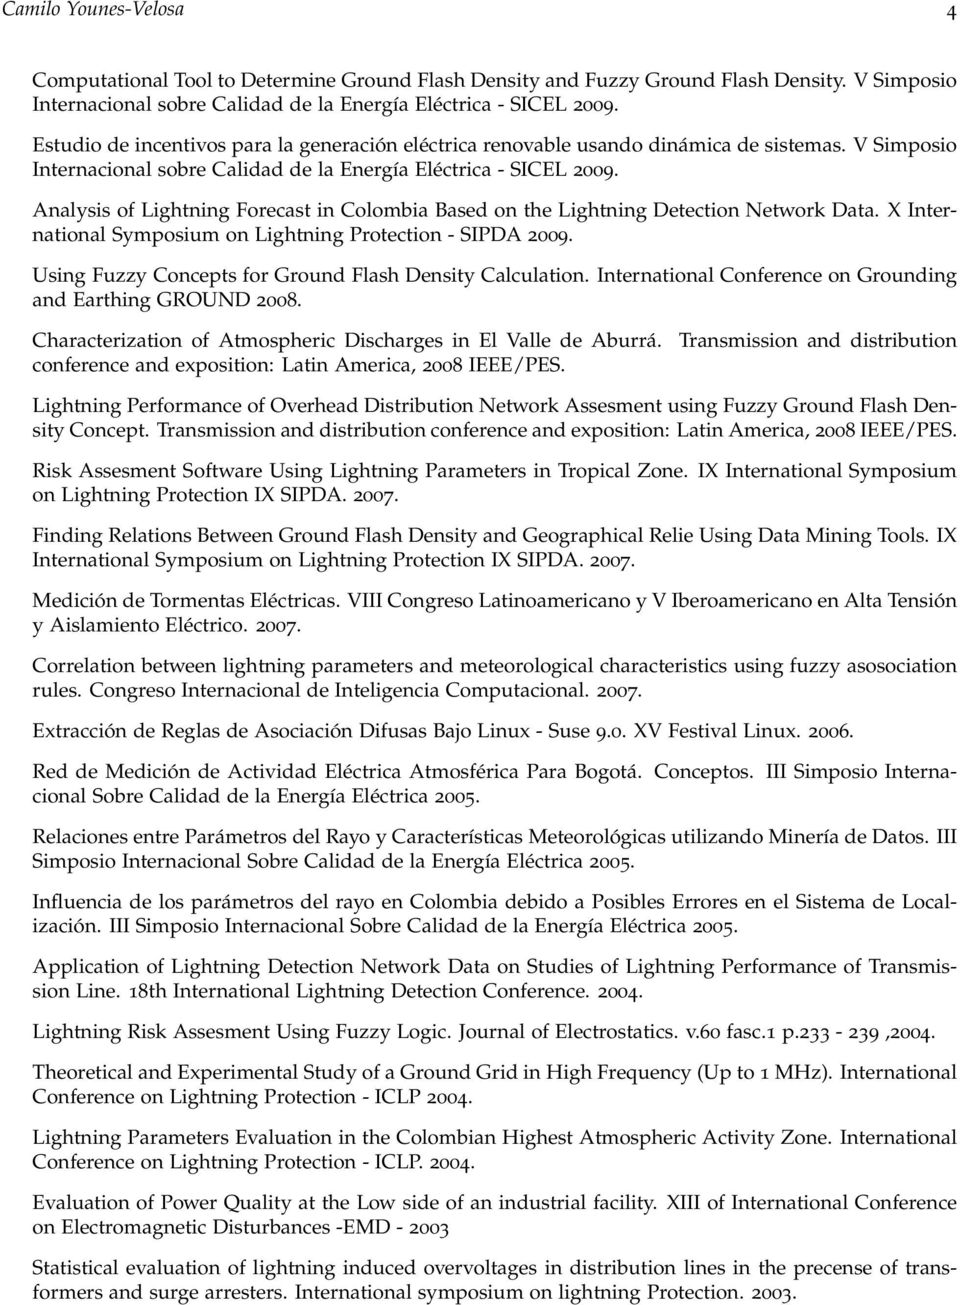 Analysis of Lightning Forecast in Colombia Based on the Lightning Detection Network Data. X International Symposium on Lightning Protection - SIPDA 2009.